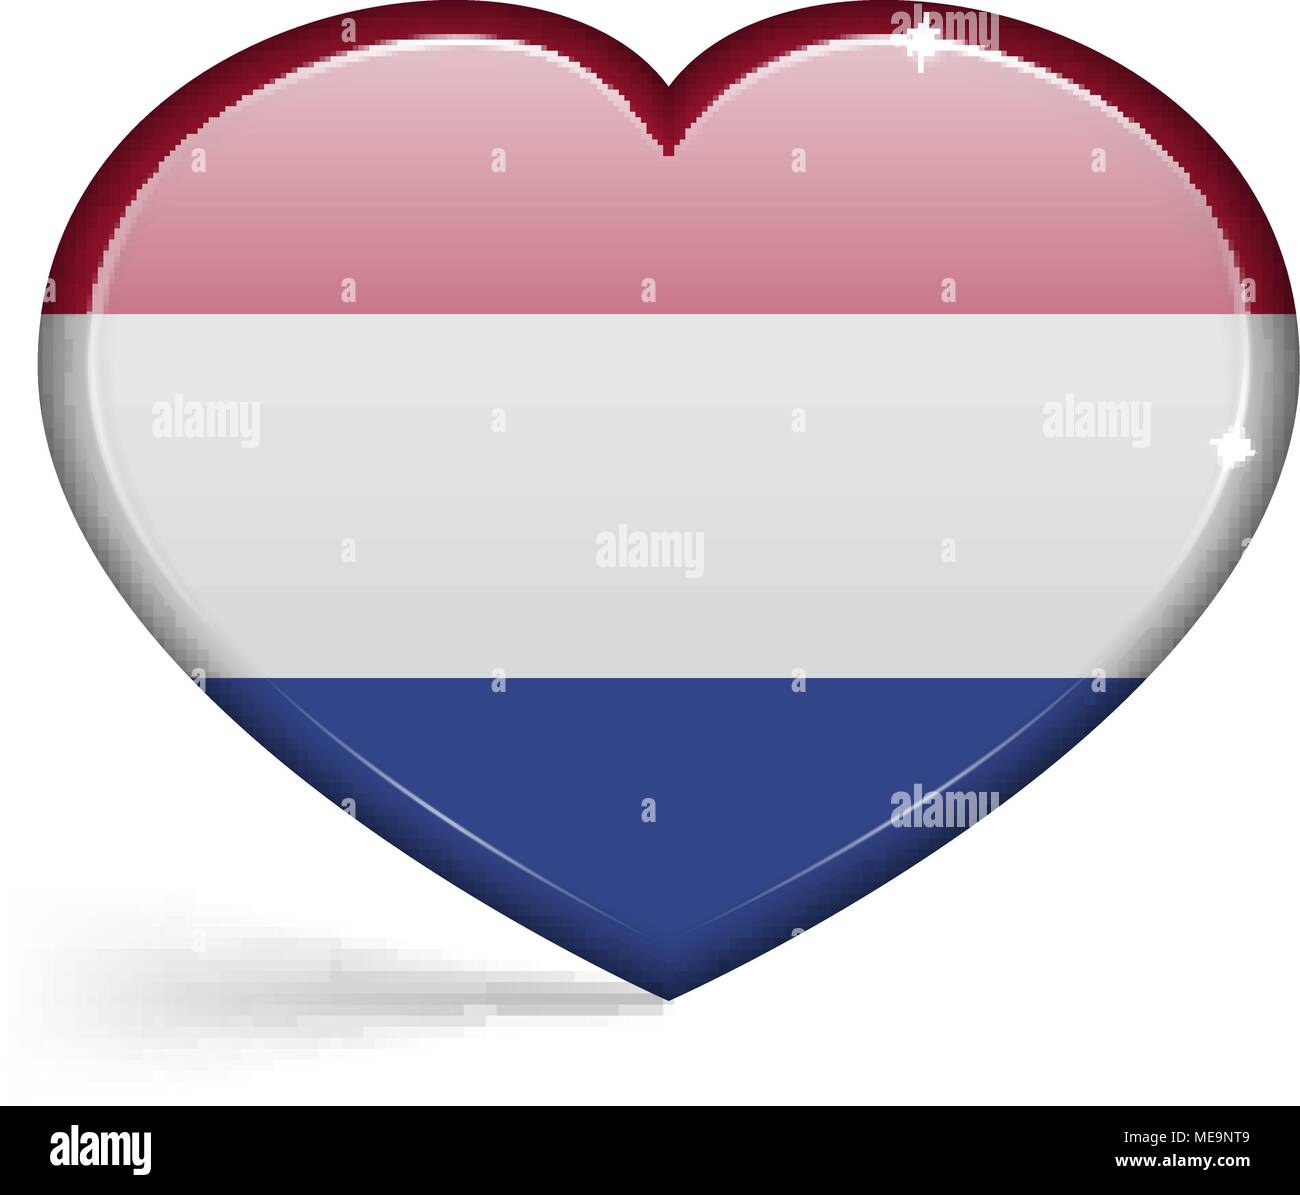 Flags of Netherlands in a heart shape with highlights on the edges. Vector illustration - Stock Vector